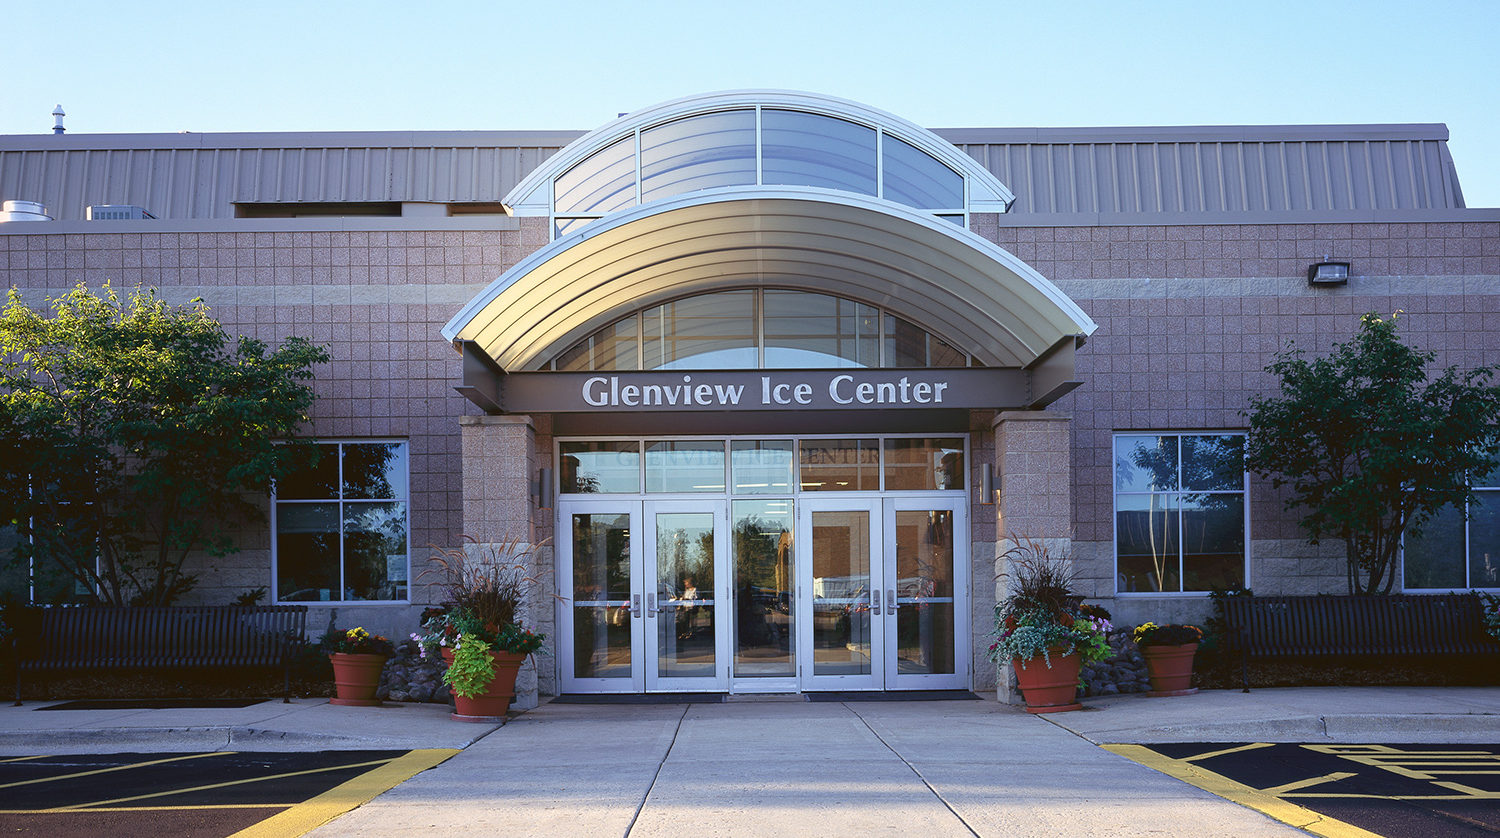 Glenview Park District Glenview Ice Center exterior